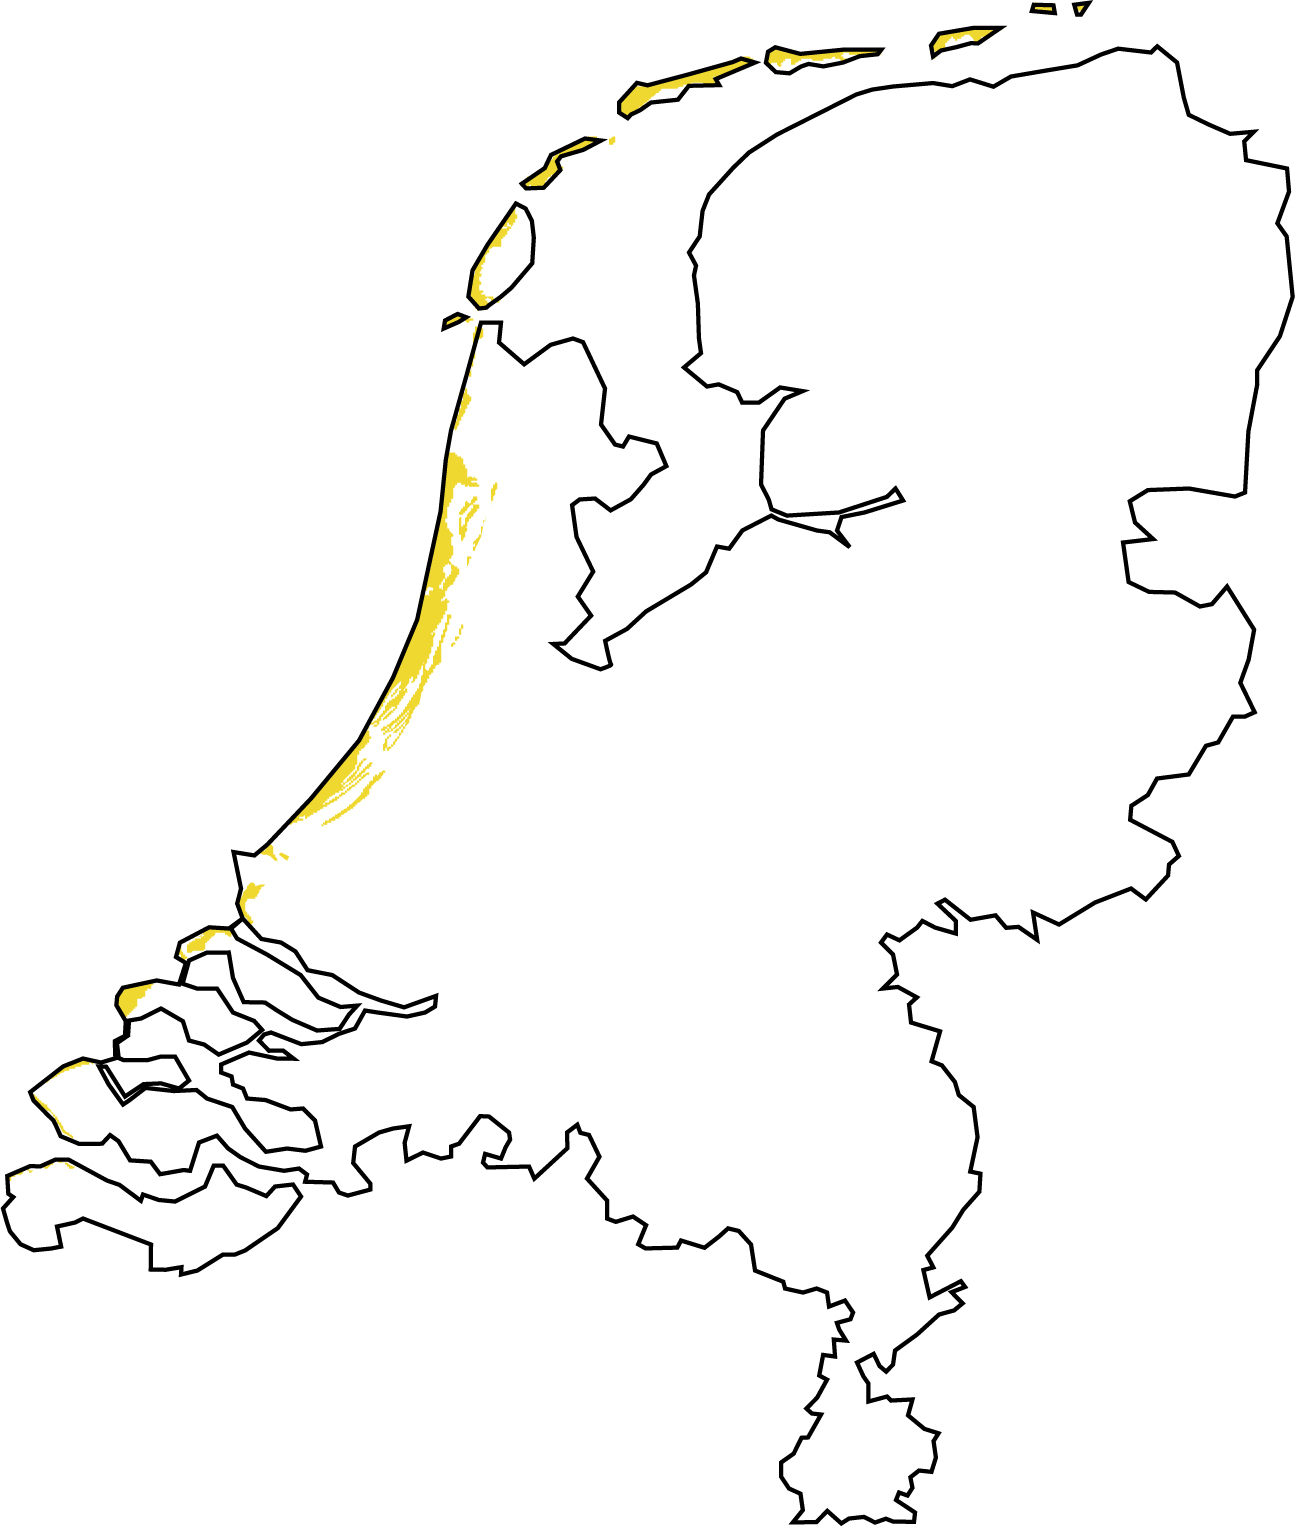 Expedition Earth: The Dutch landscape